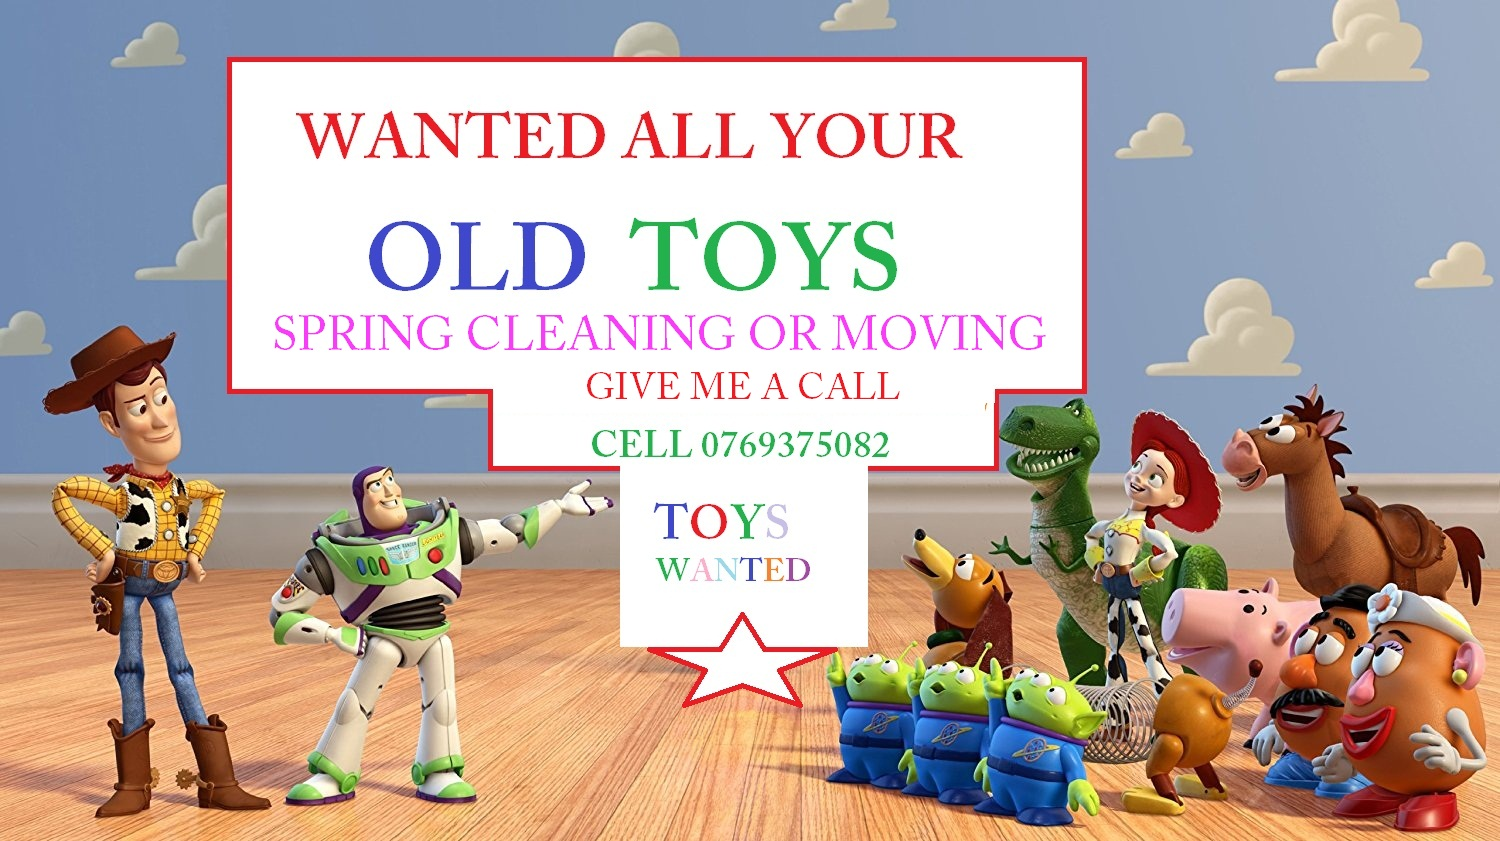 All Toy's Wanted